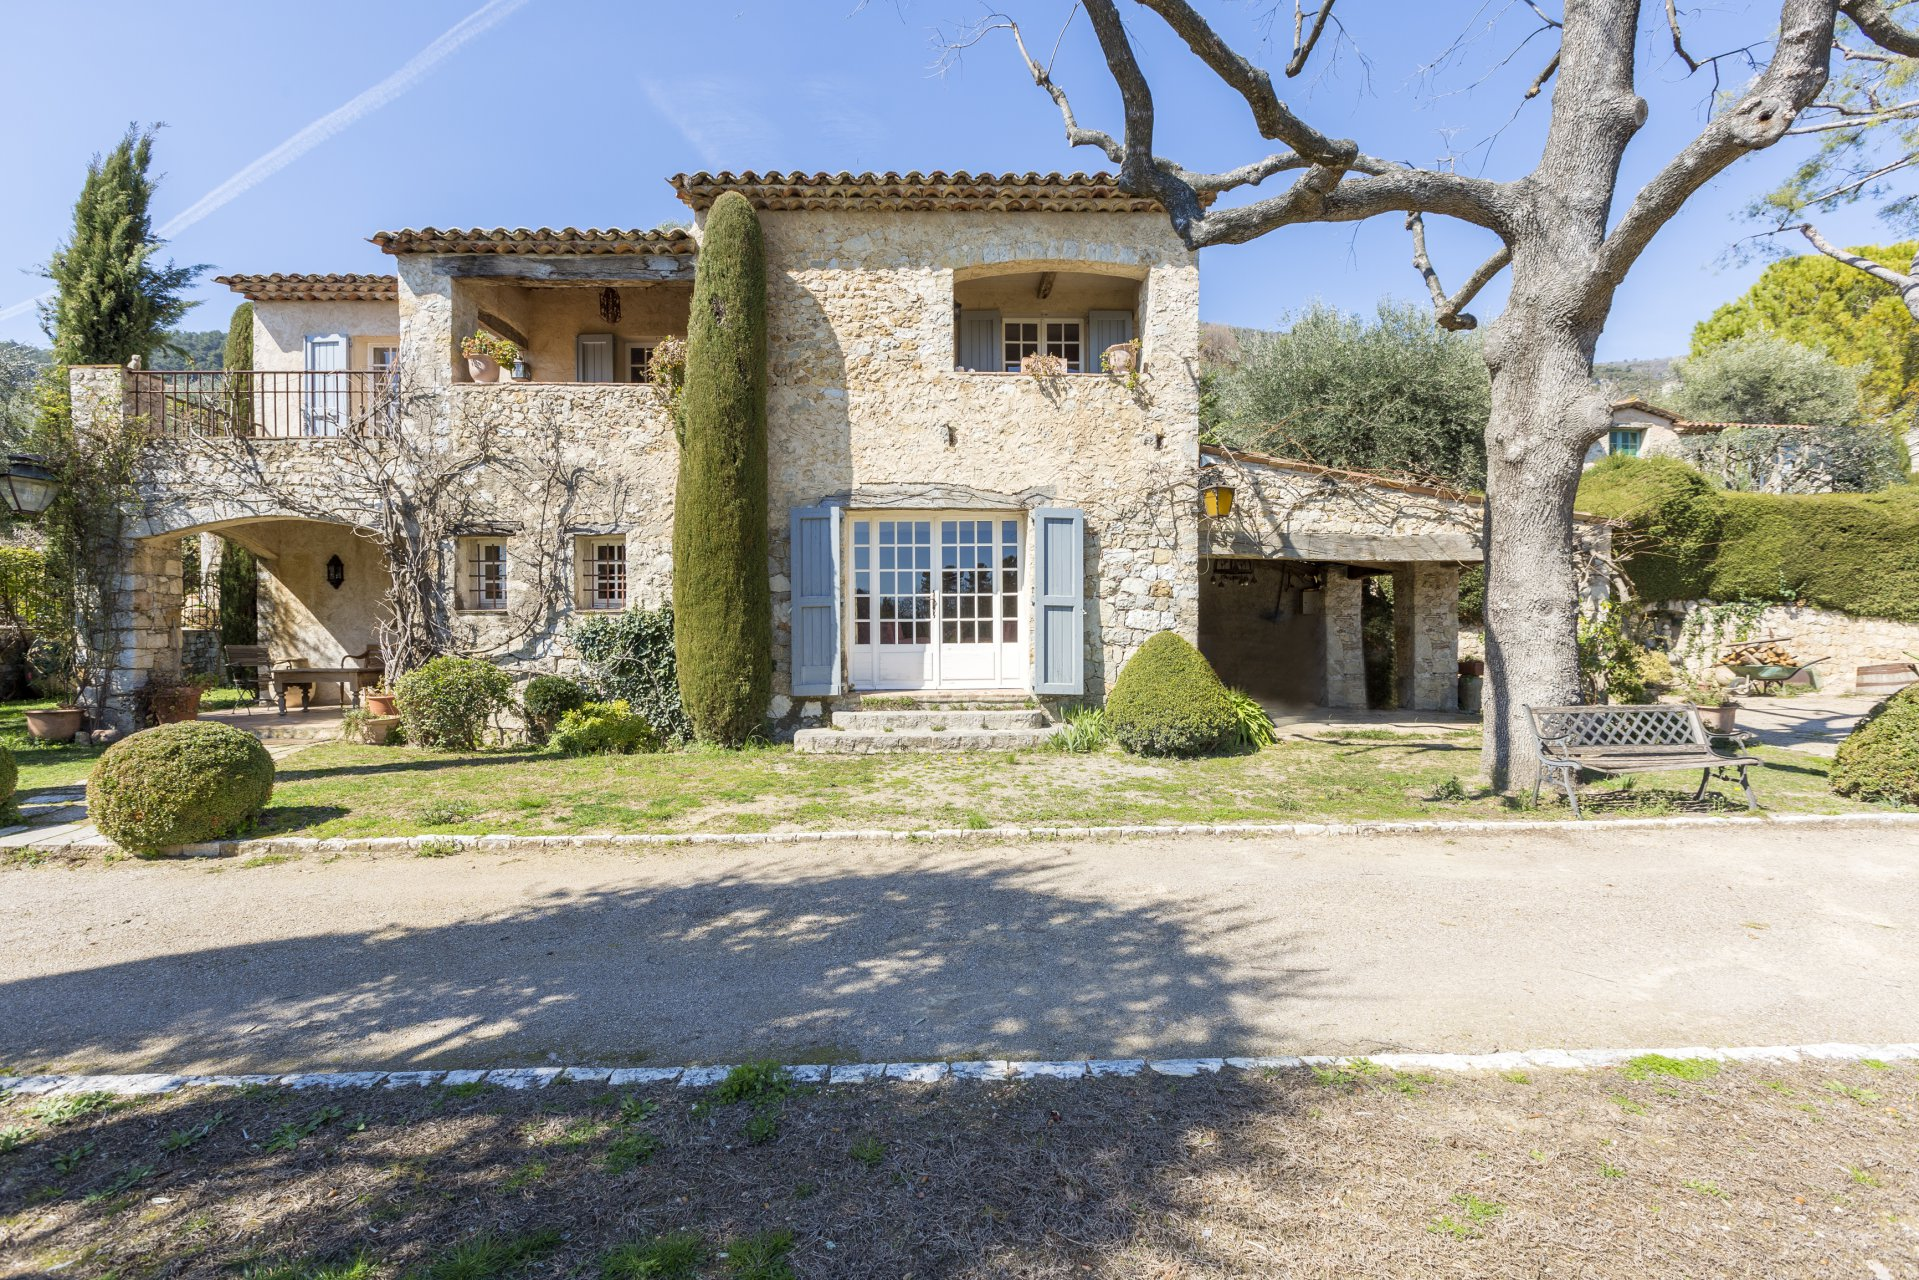 One property, 2 stone bastides